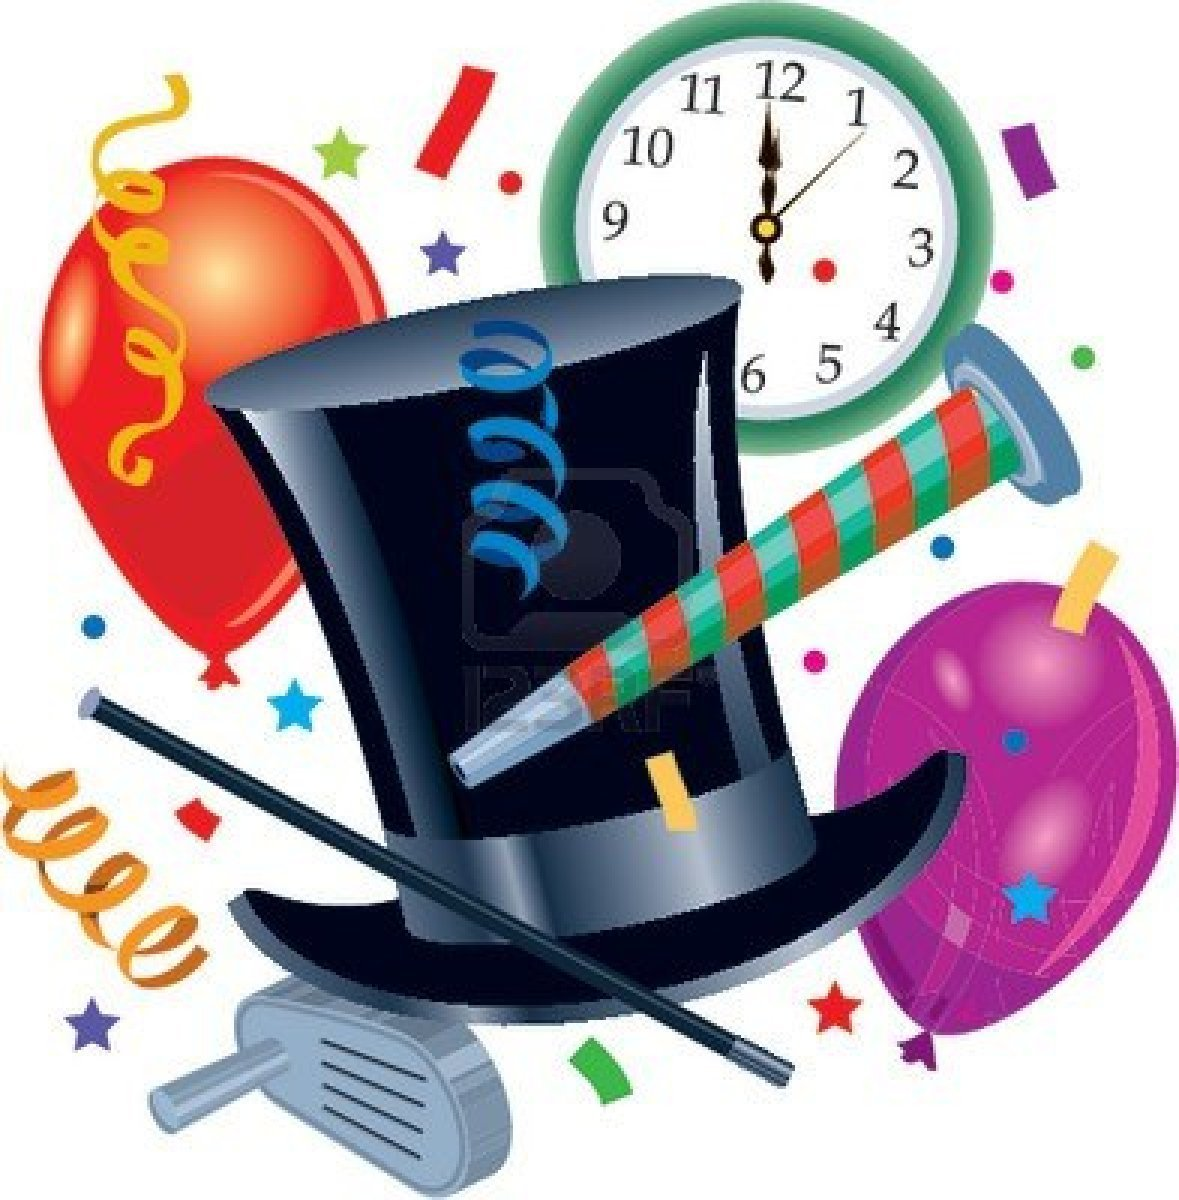 New years eve party hat clipart 7 » Clipart Portal.